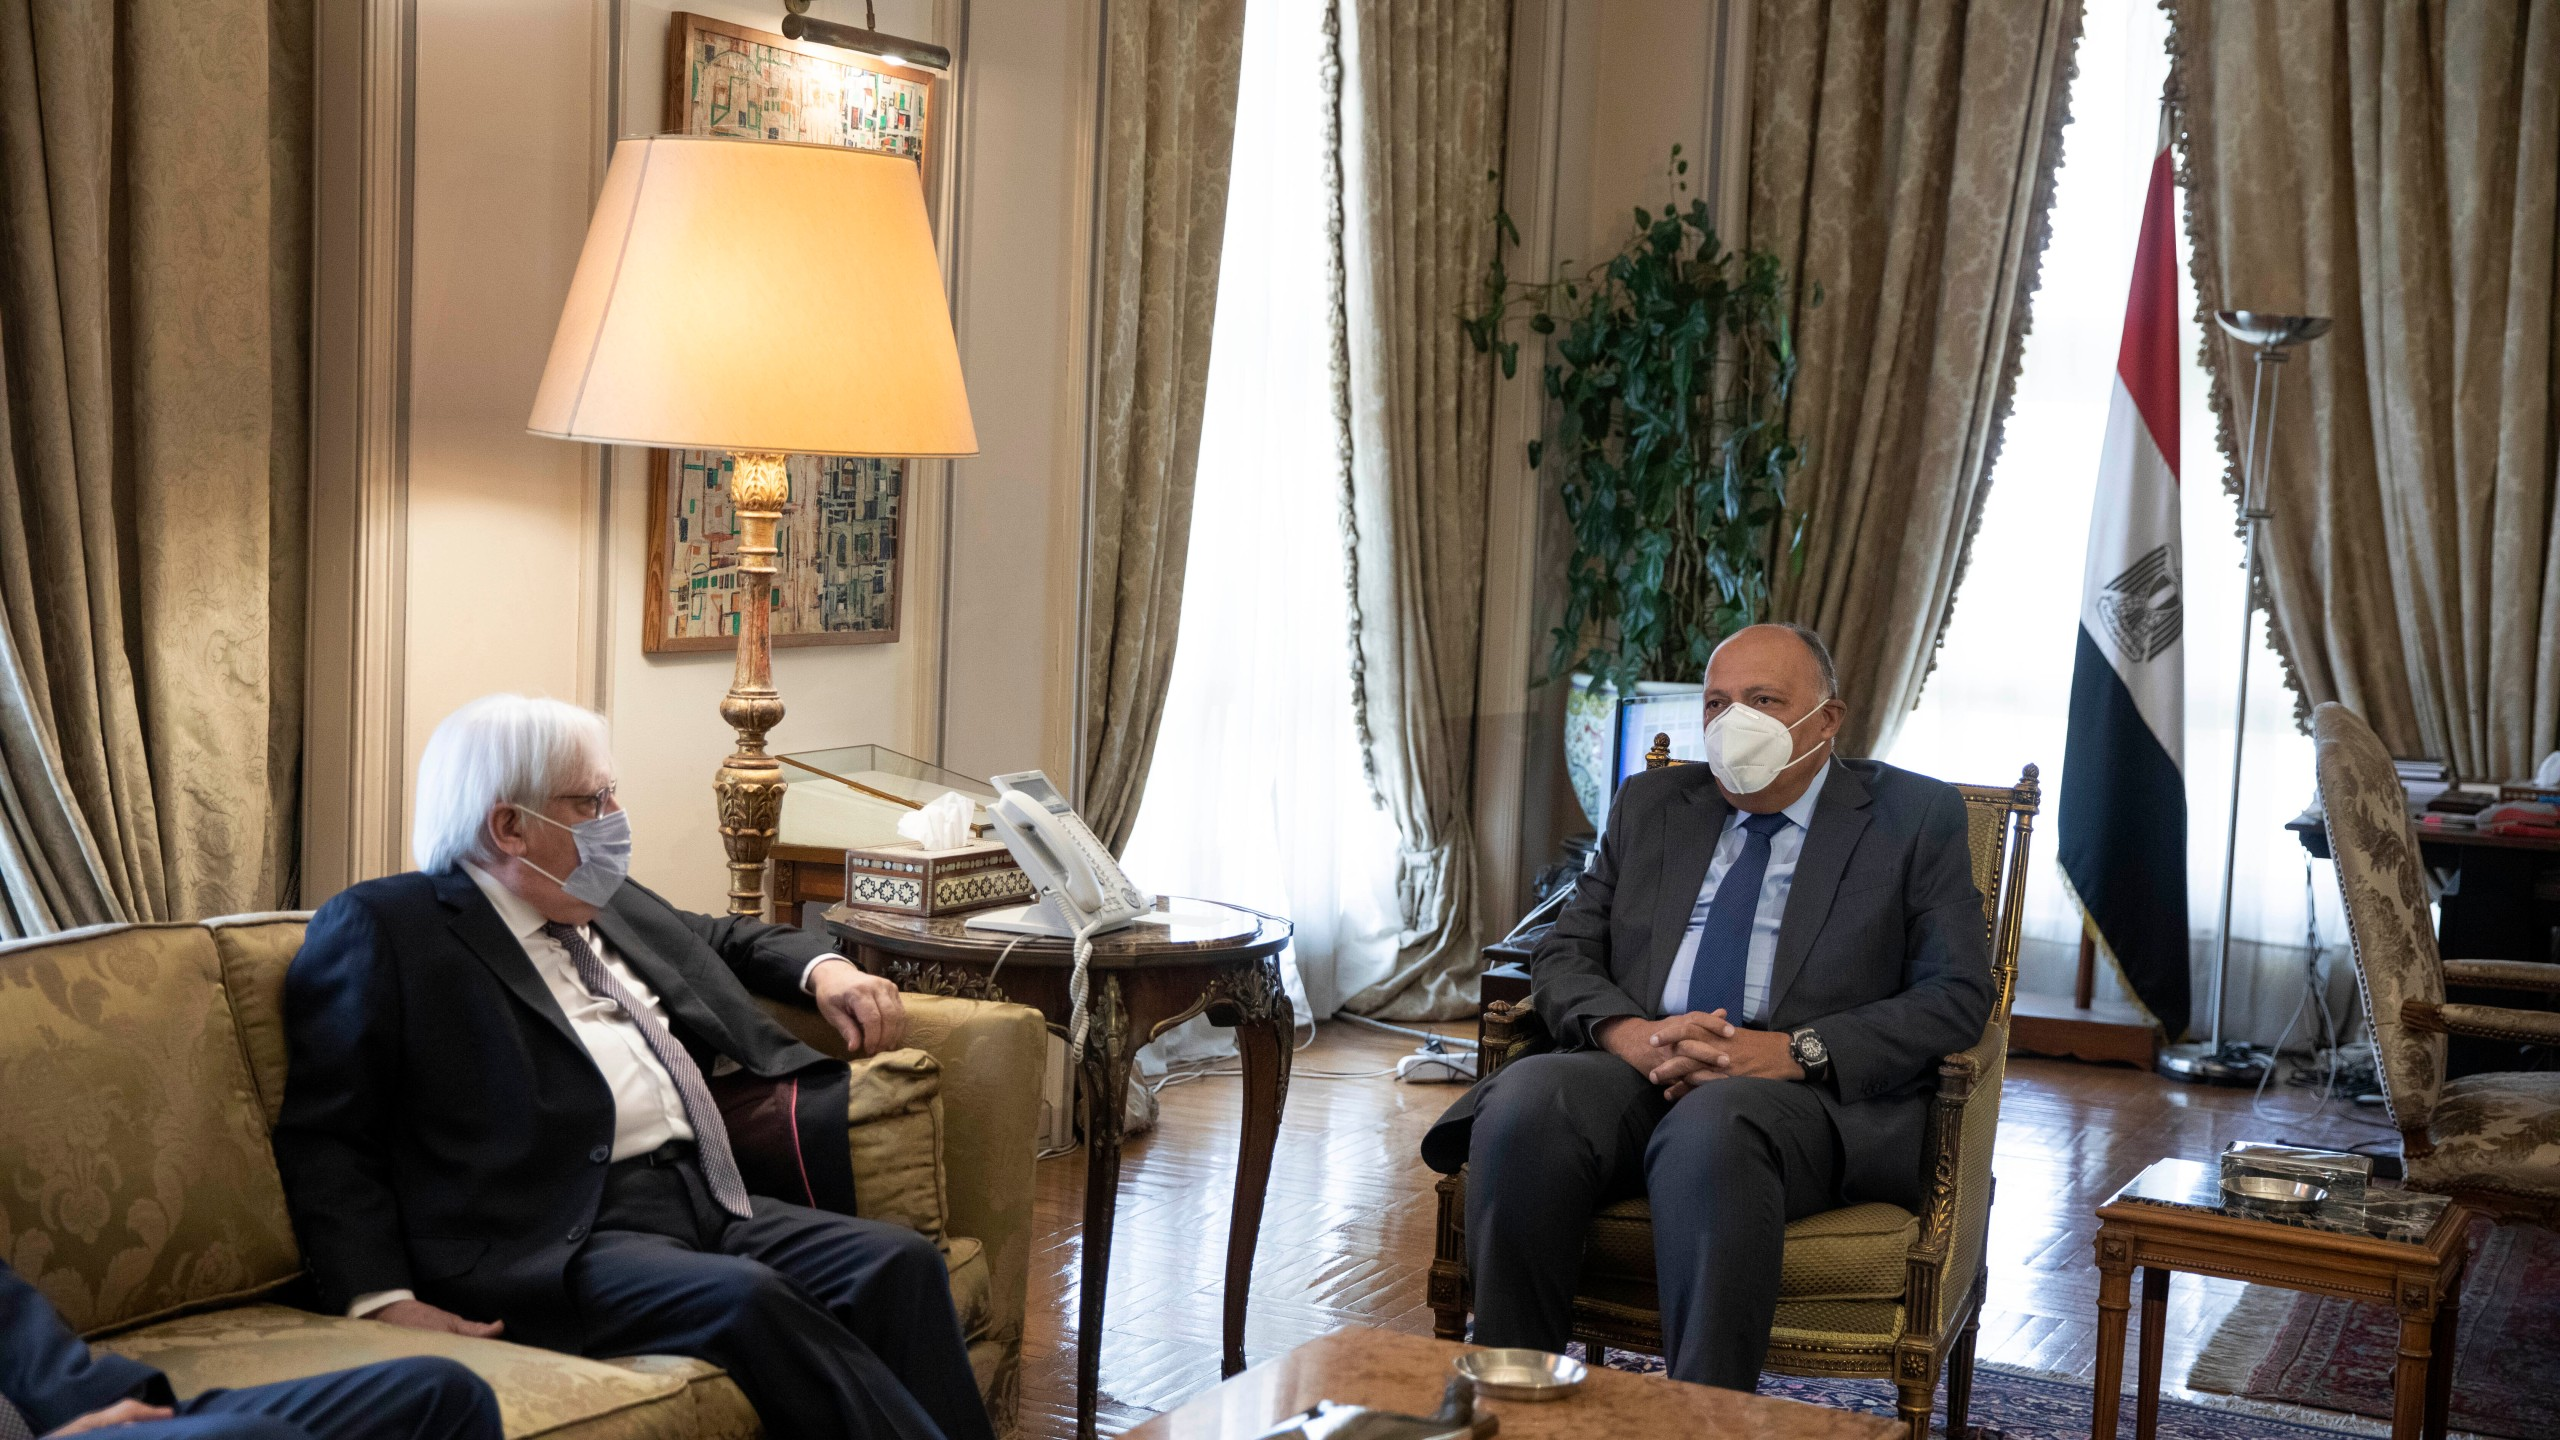 Martin Griffiths, Sameh Shoukry